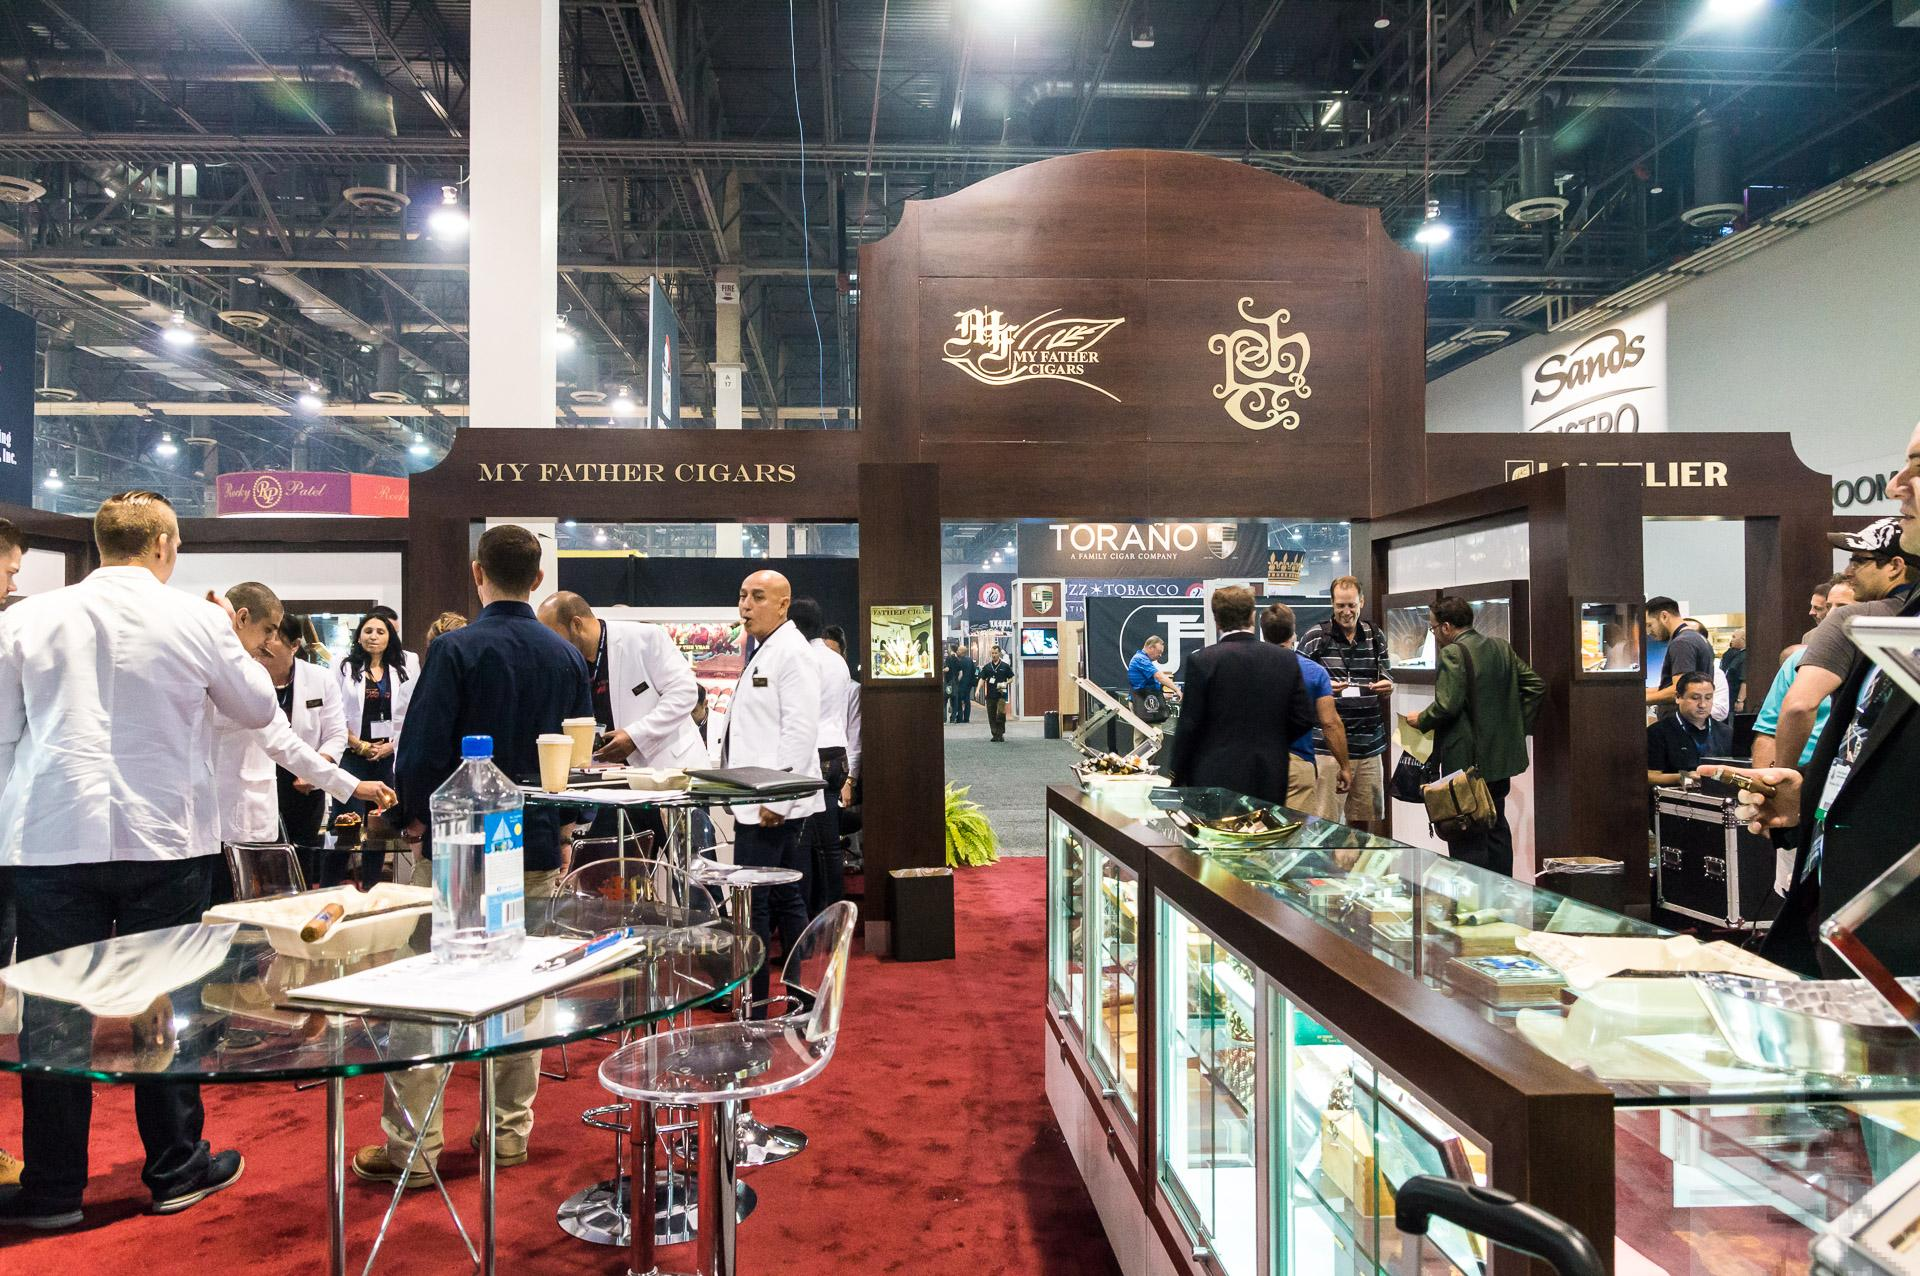 IPCPR 2014: The Show in Pictures – My Father/Tatuaje